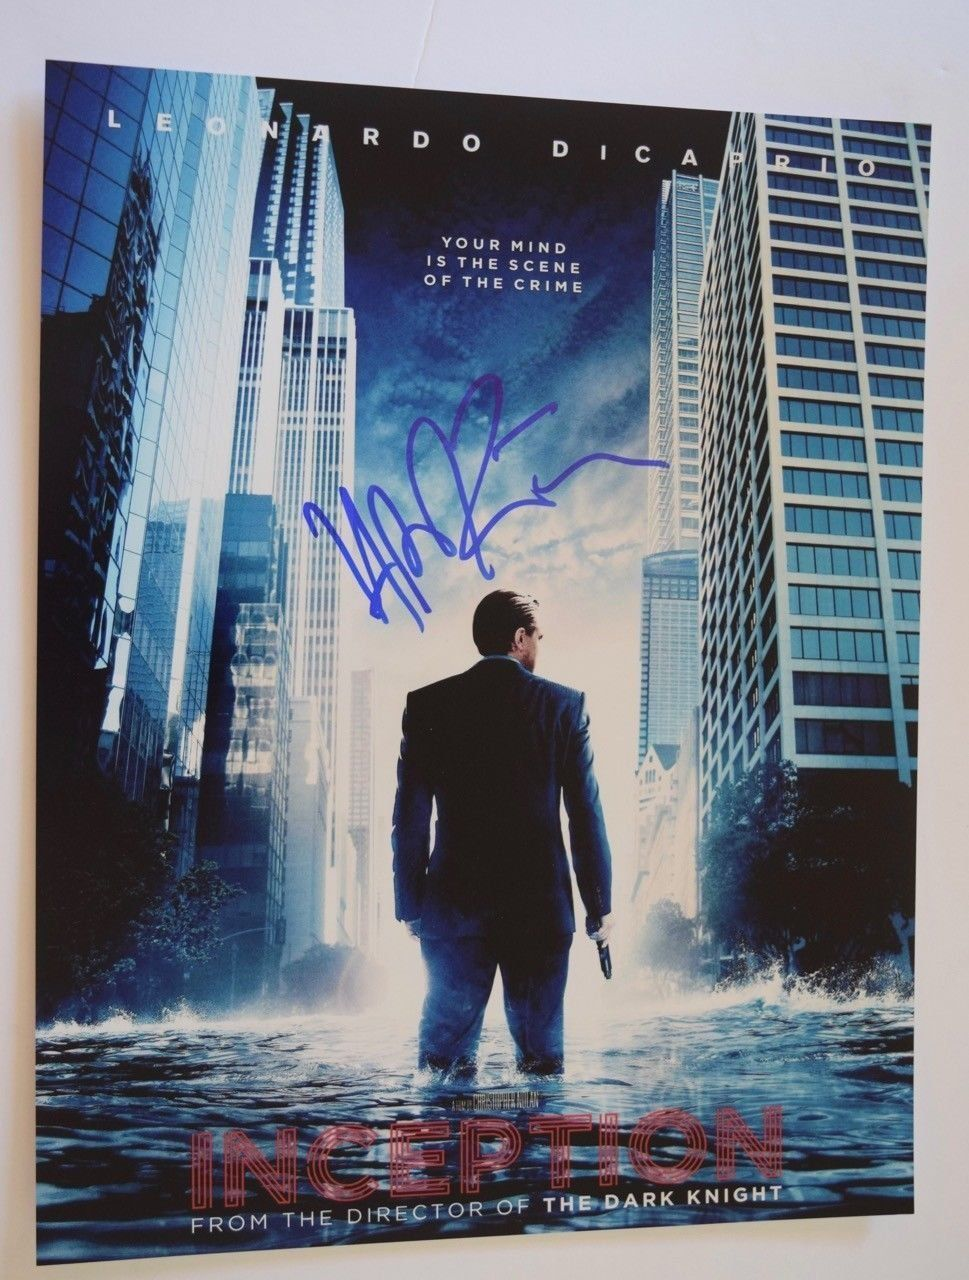 Hans zimmer signed autographed 11x14 photo poster